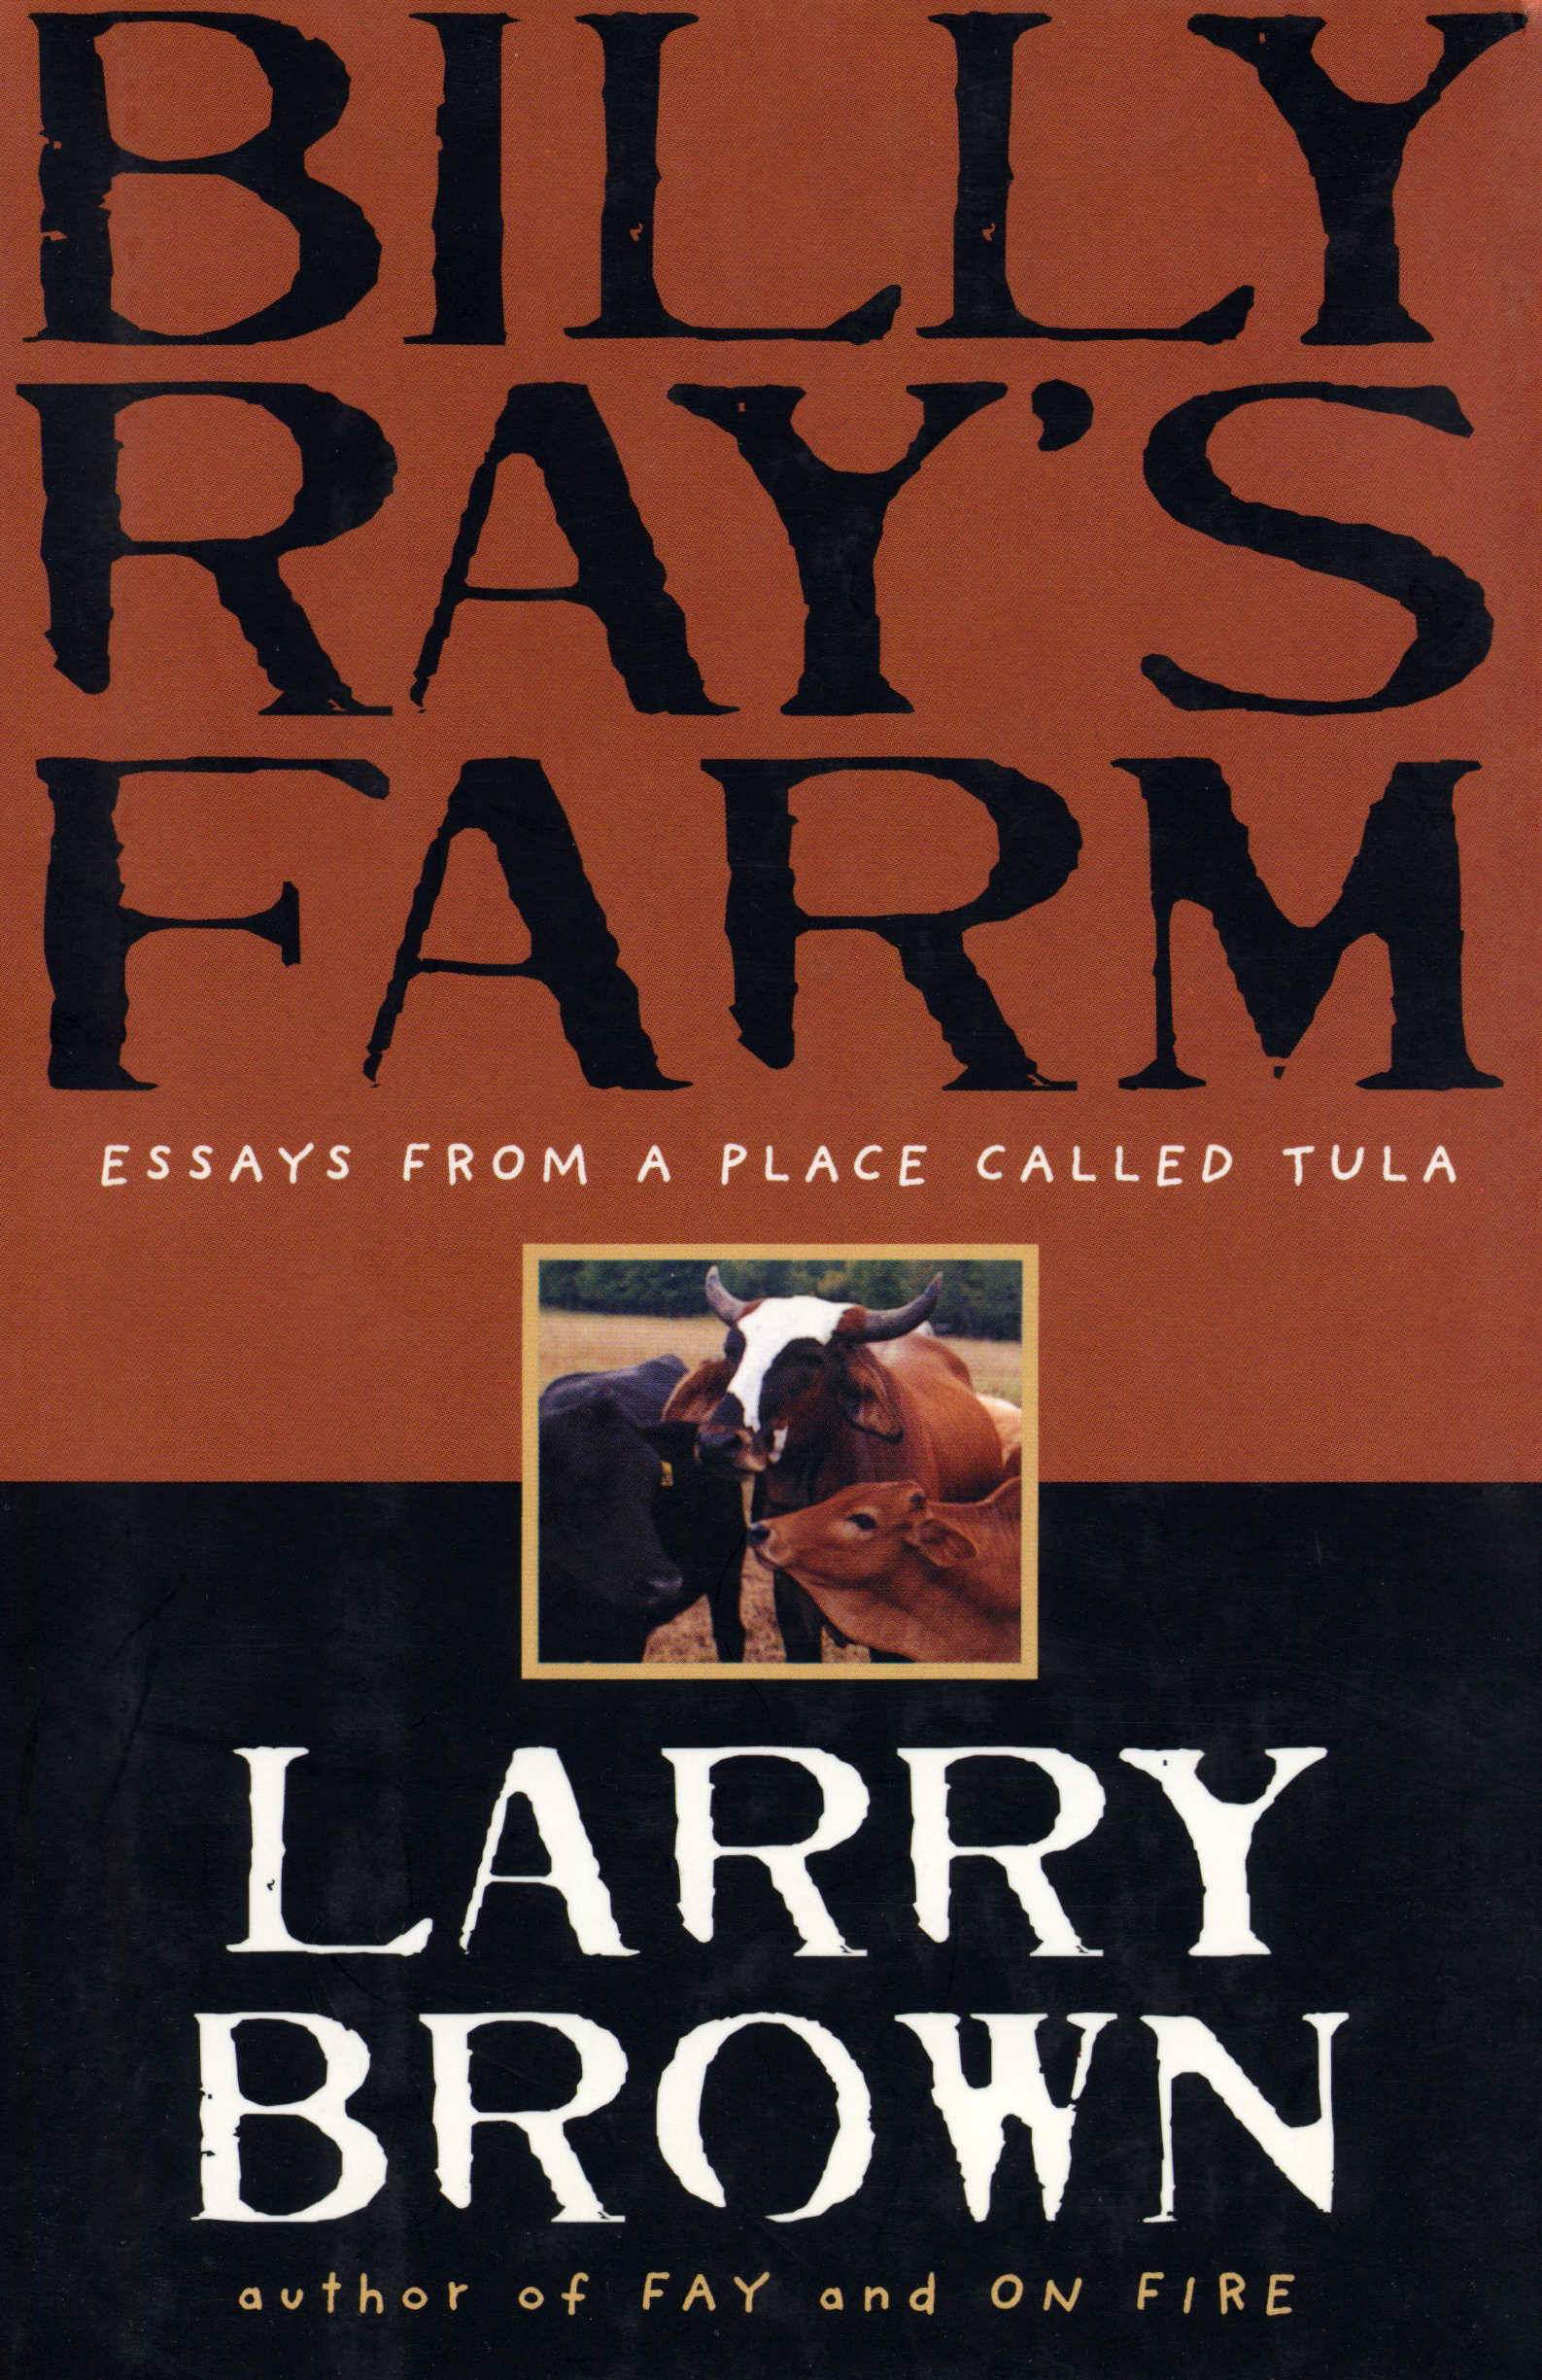 Image result for billy ray's farm larry brown